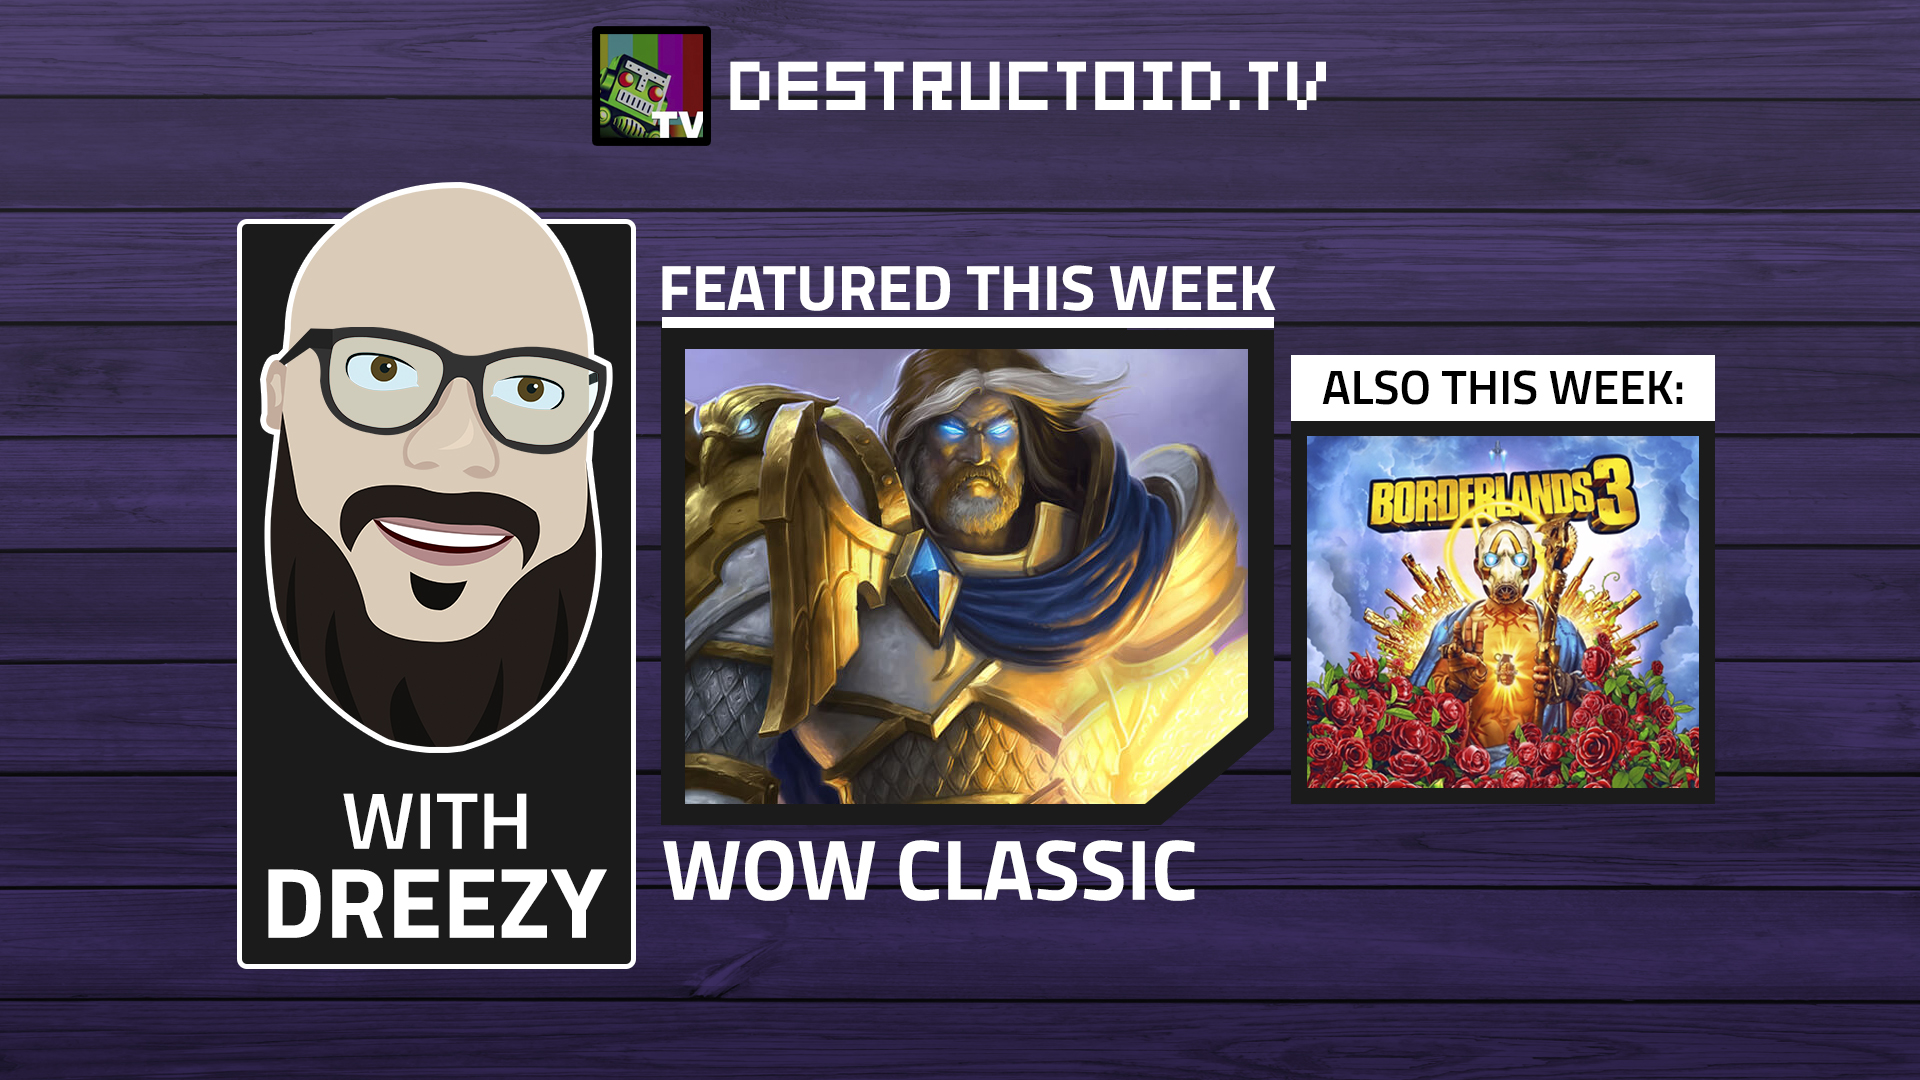 We're live again on Twitch this week with WoW Classic and more Borderlands 3! screenshot